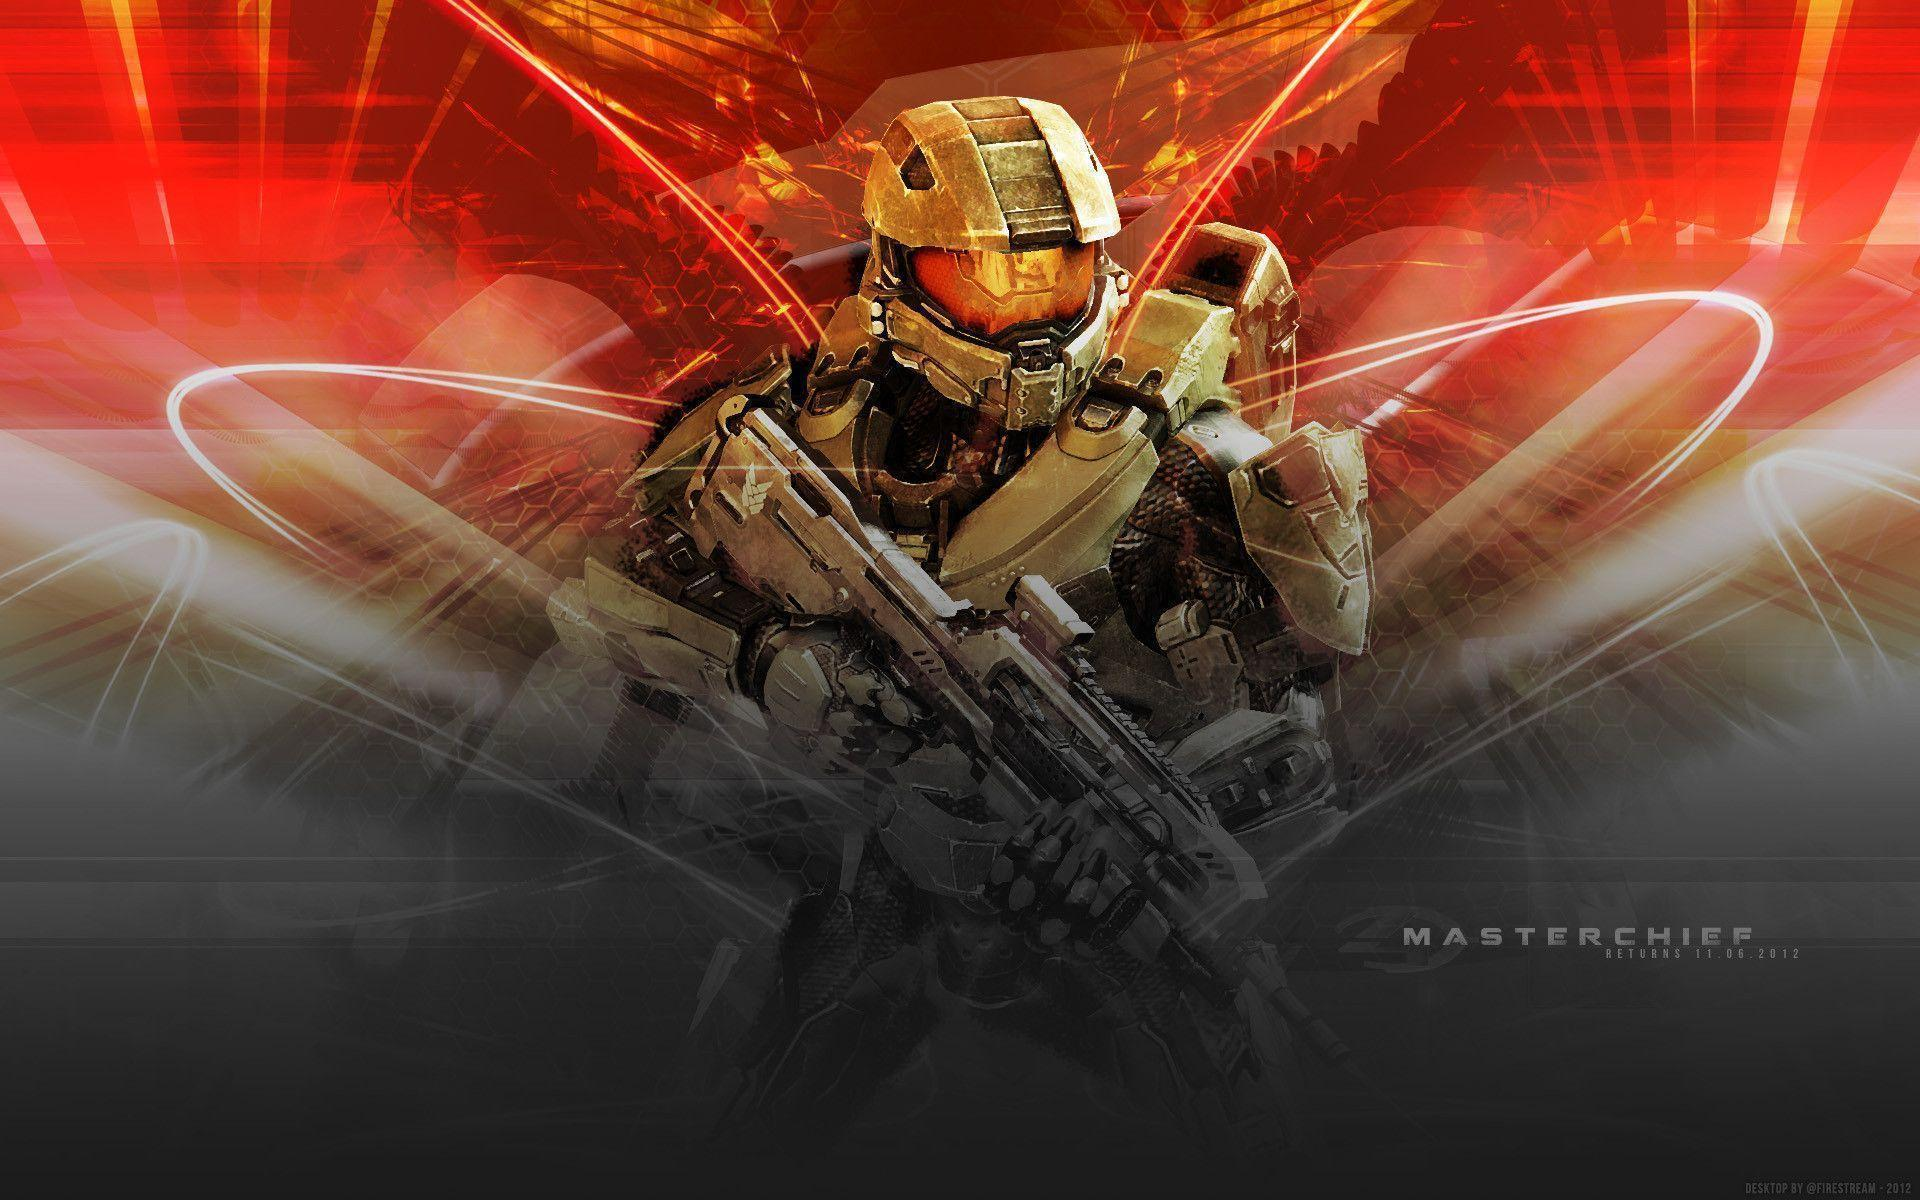 Cool Halo 4 Wallpapers 1920x1200